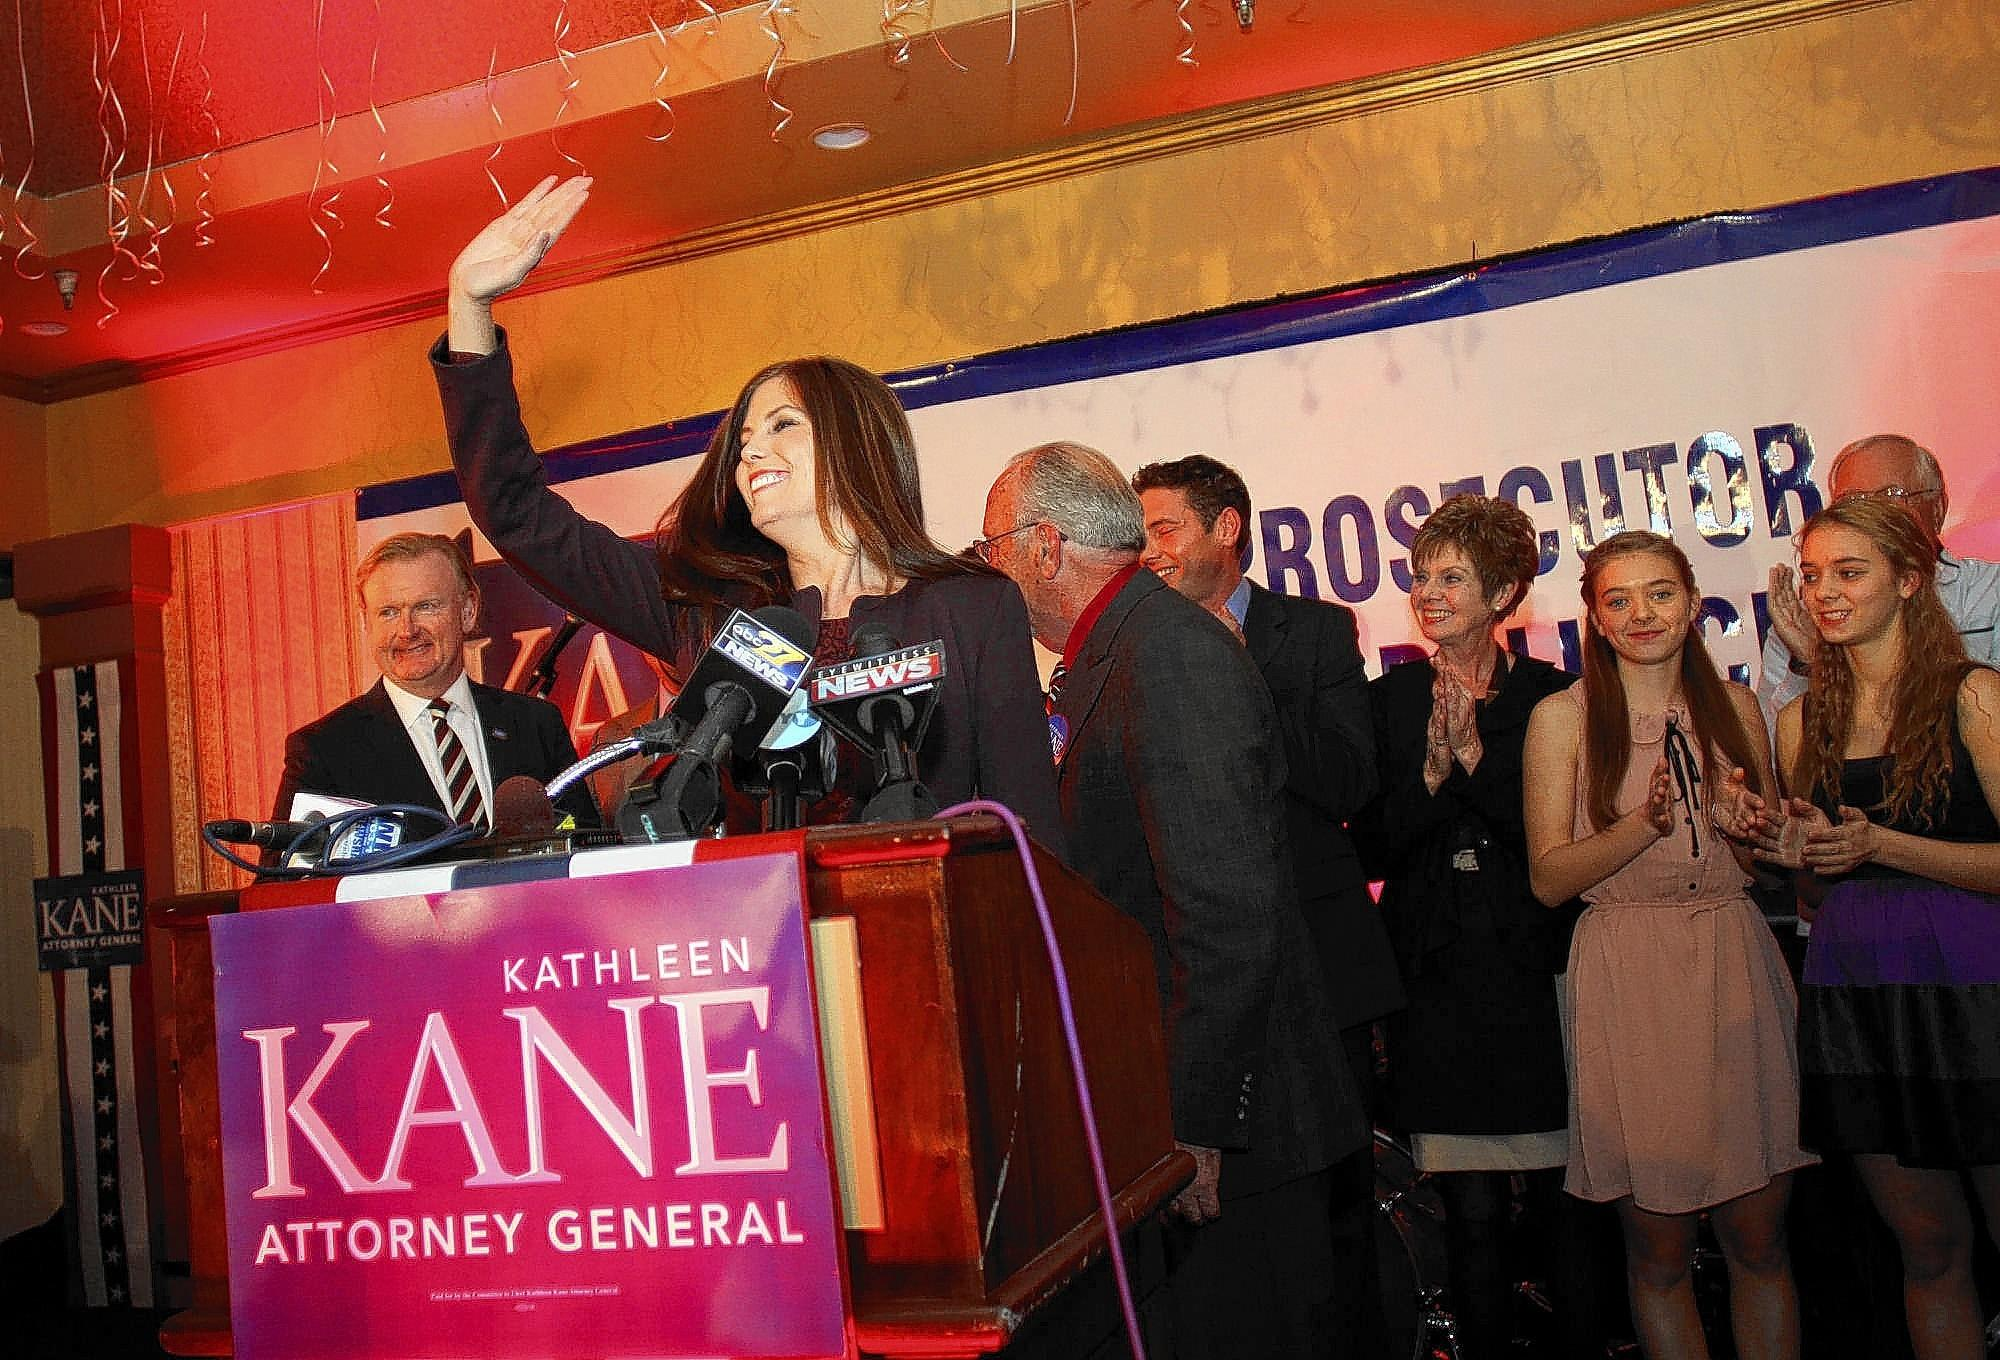 Seventy days before she took an oath to uphold the law while being sworn in, Kathleen Kane celebrated her election as Pennsylvania attorney general on Nov. 6, 2012.